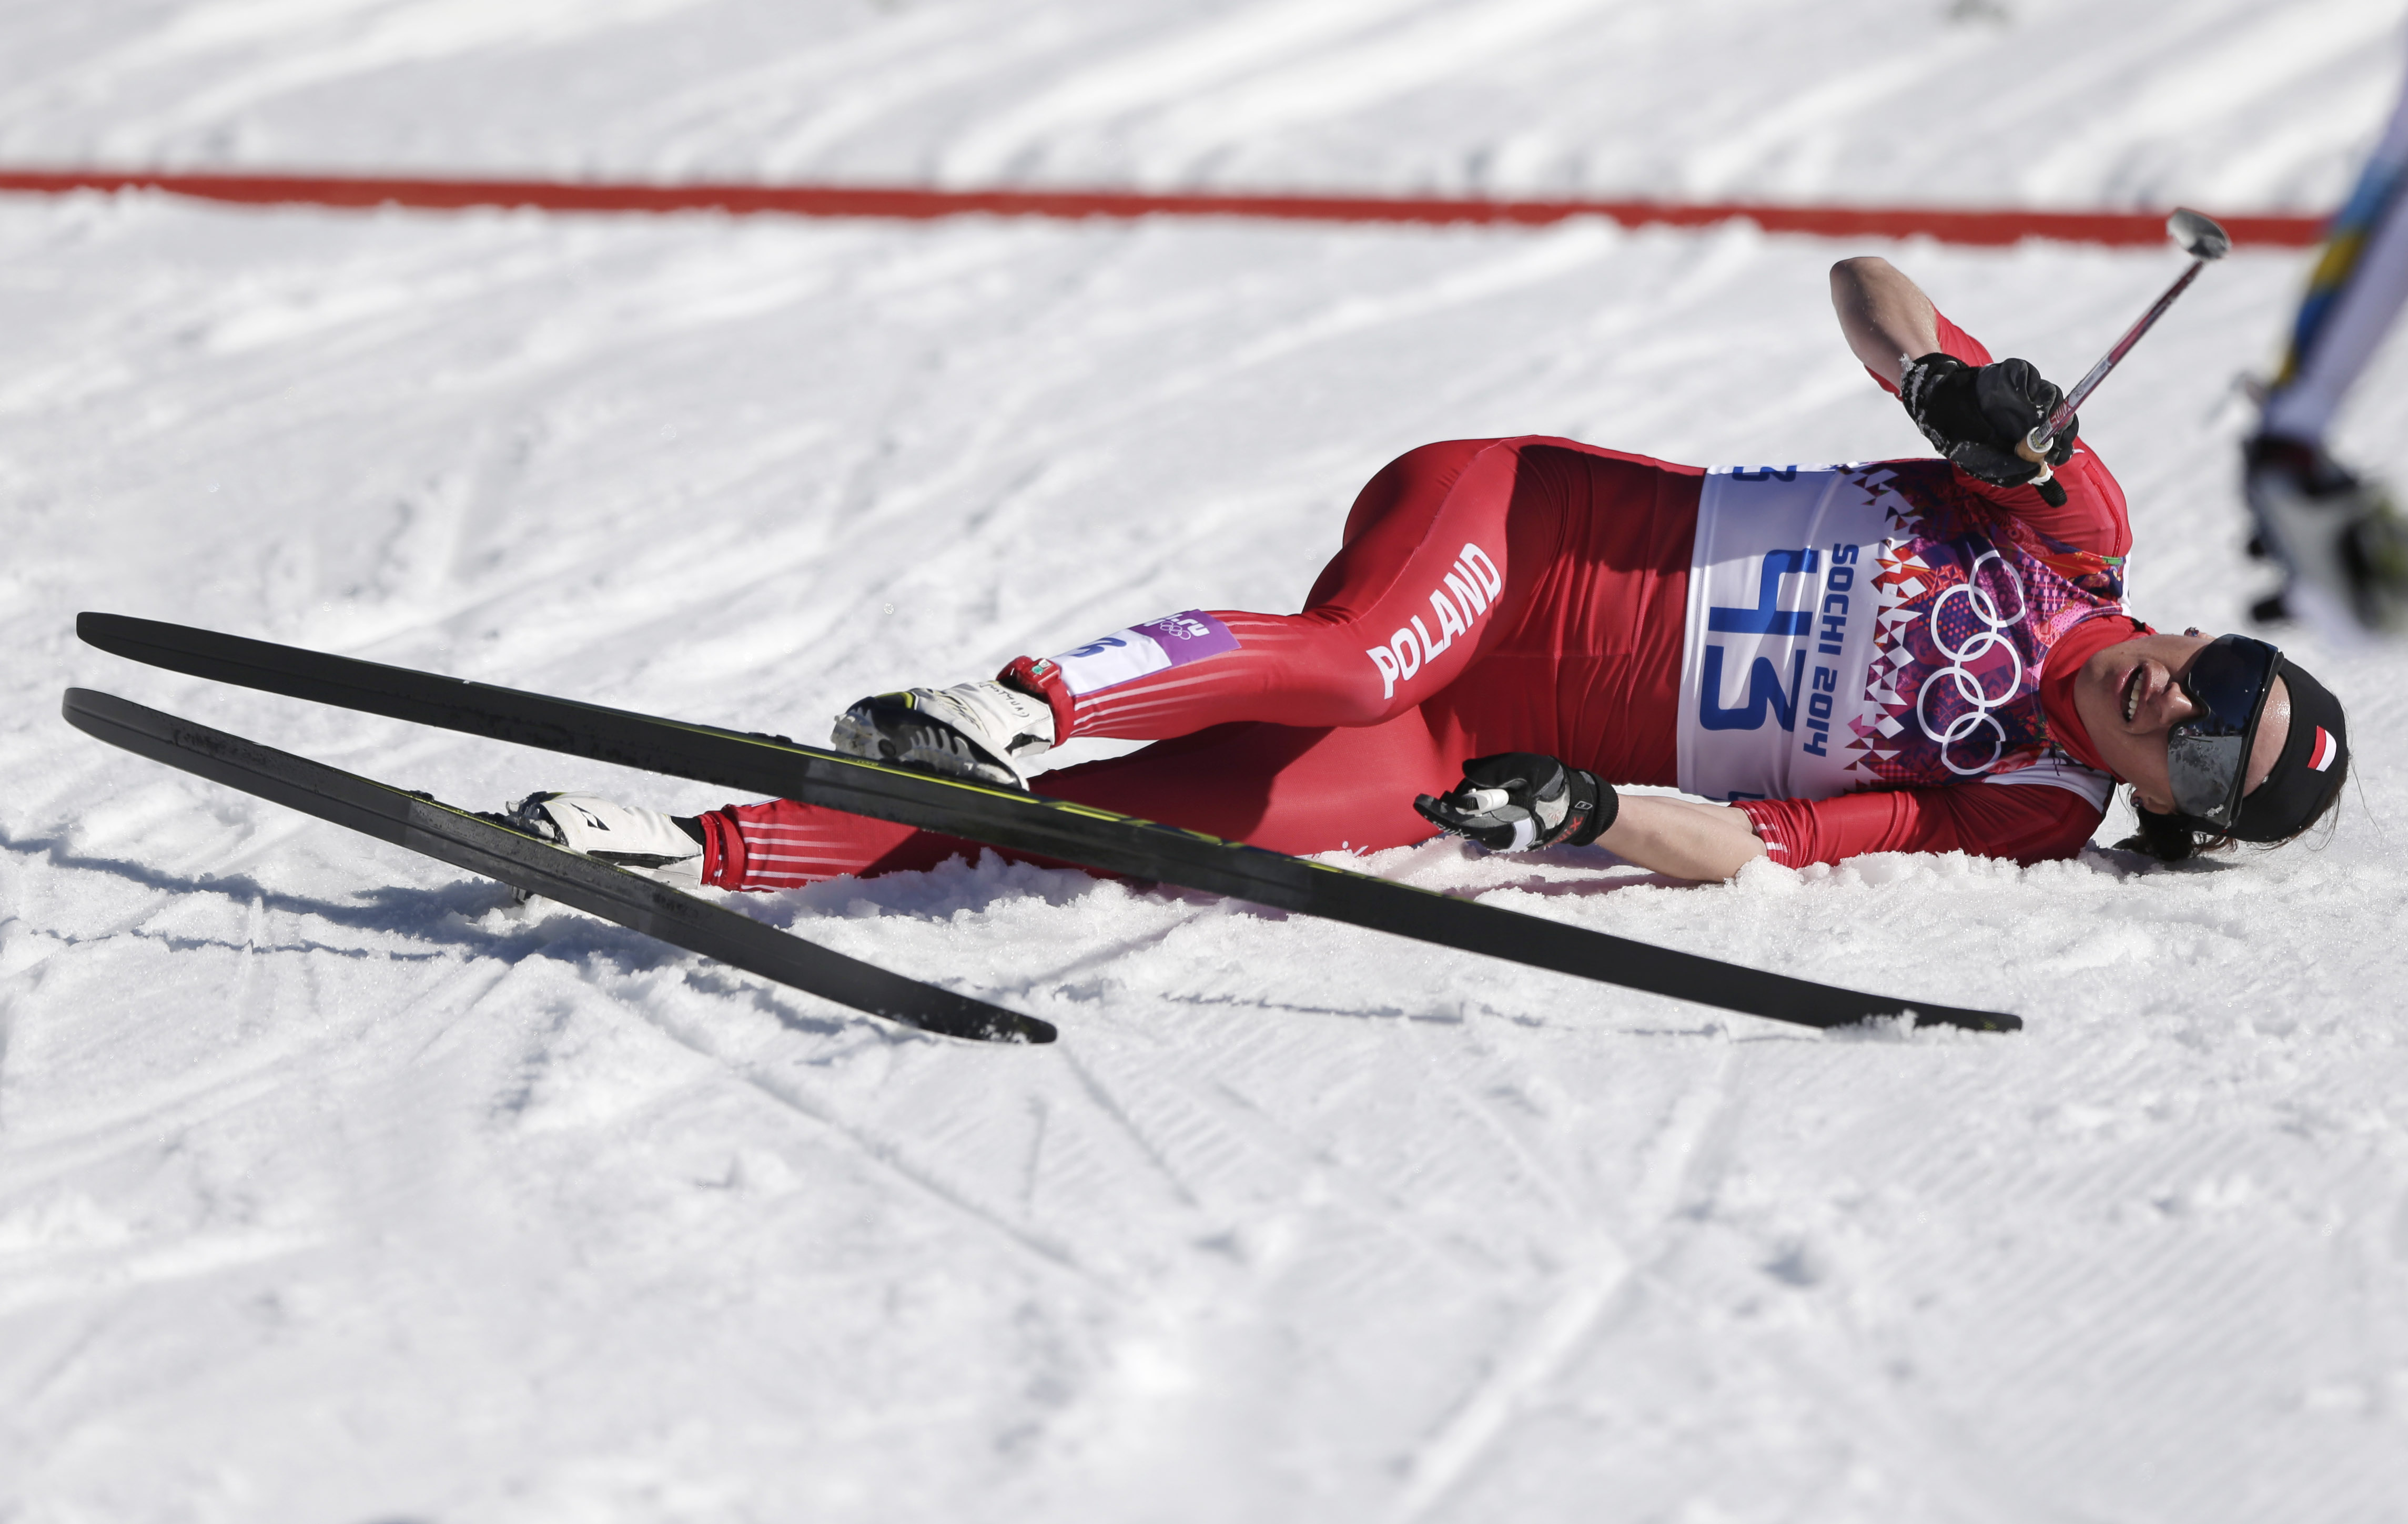 Poland's Justyna Kowalczyk catches her breath after winning the gold during the women's 10K classical-style cross-country race at the 2014 Winter Olympics, Thursday, Feb. 13, 2014, in Krasnaya Polyana, Russia. (AP Photo/Matthias Schrader)